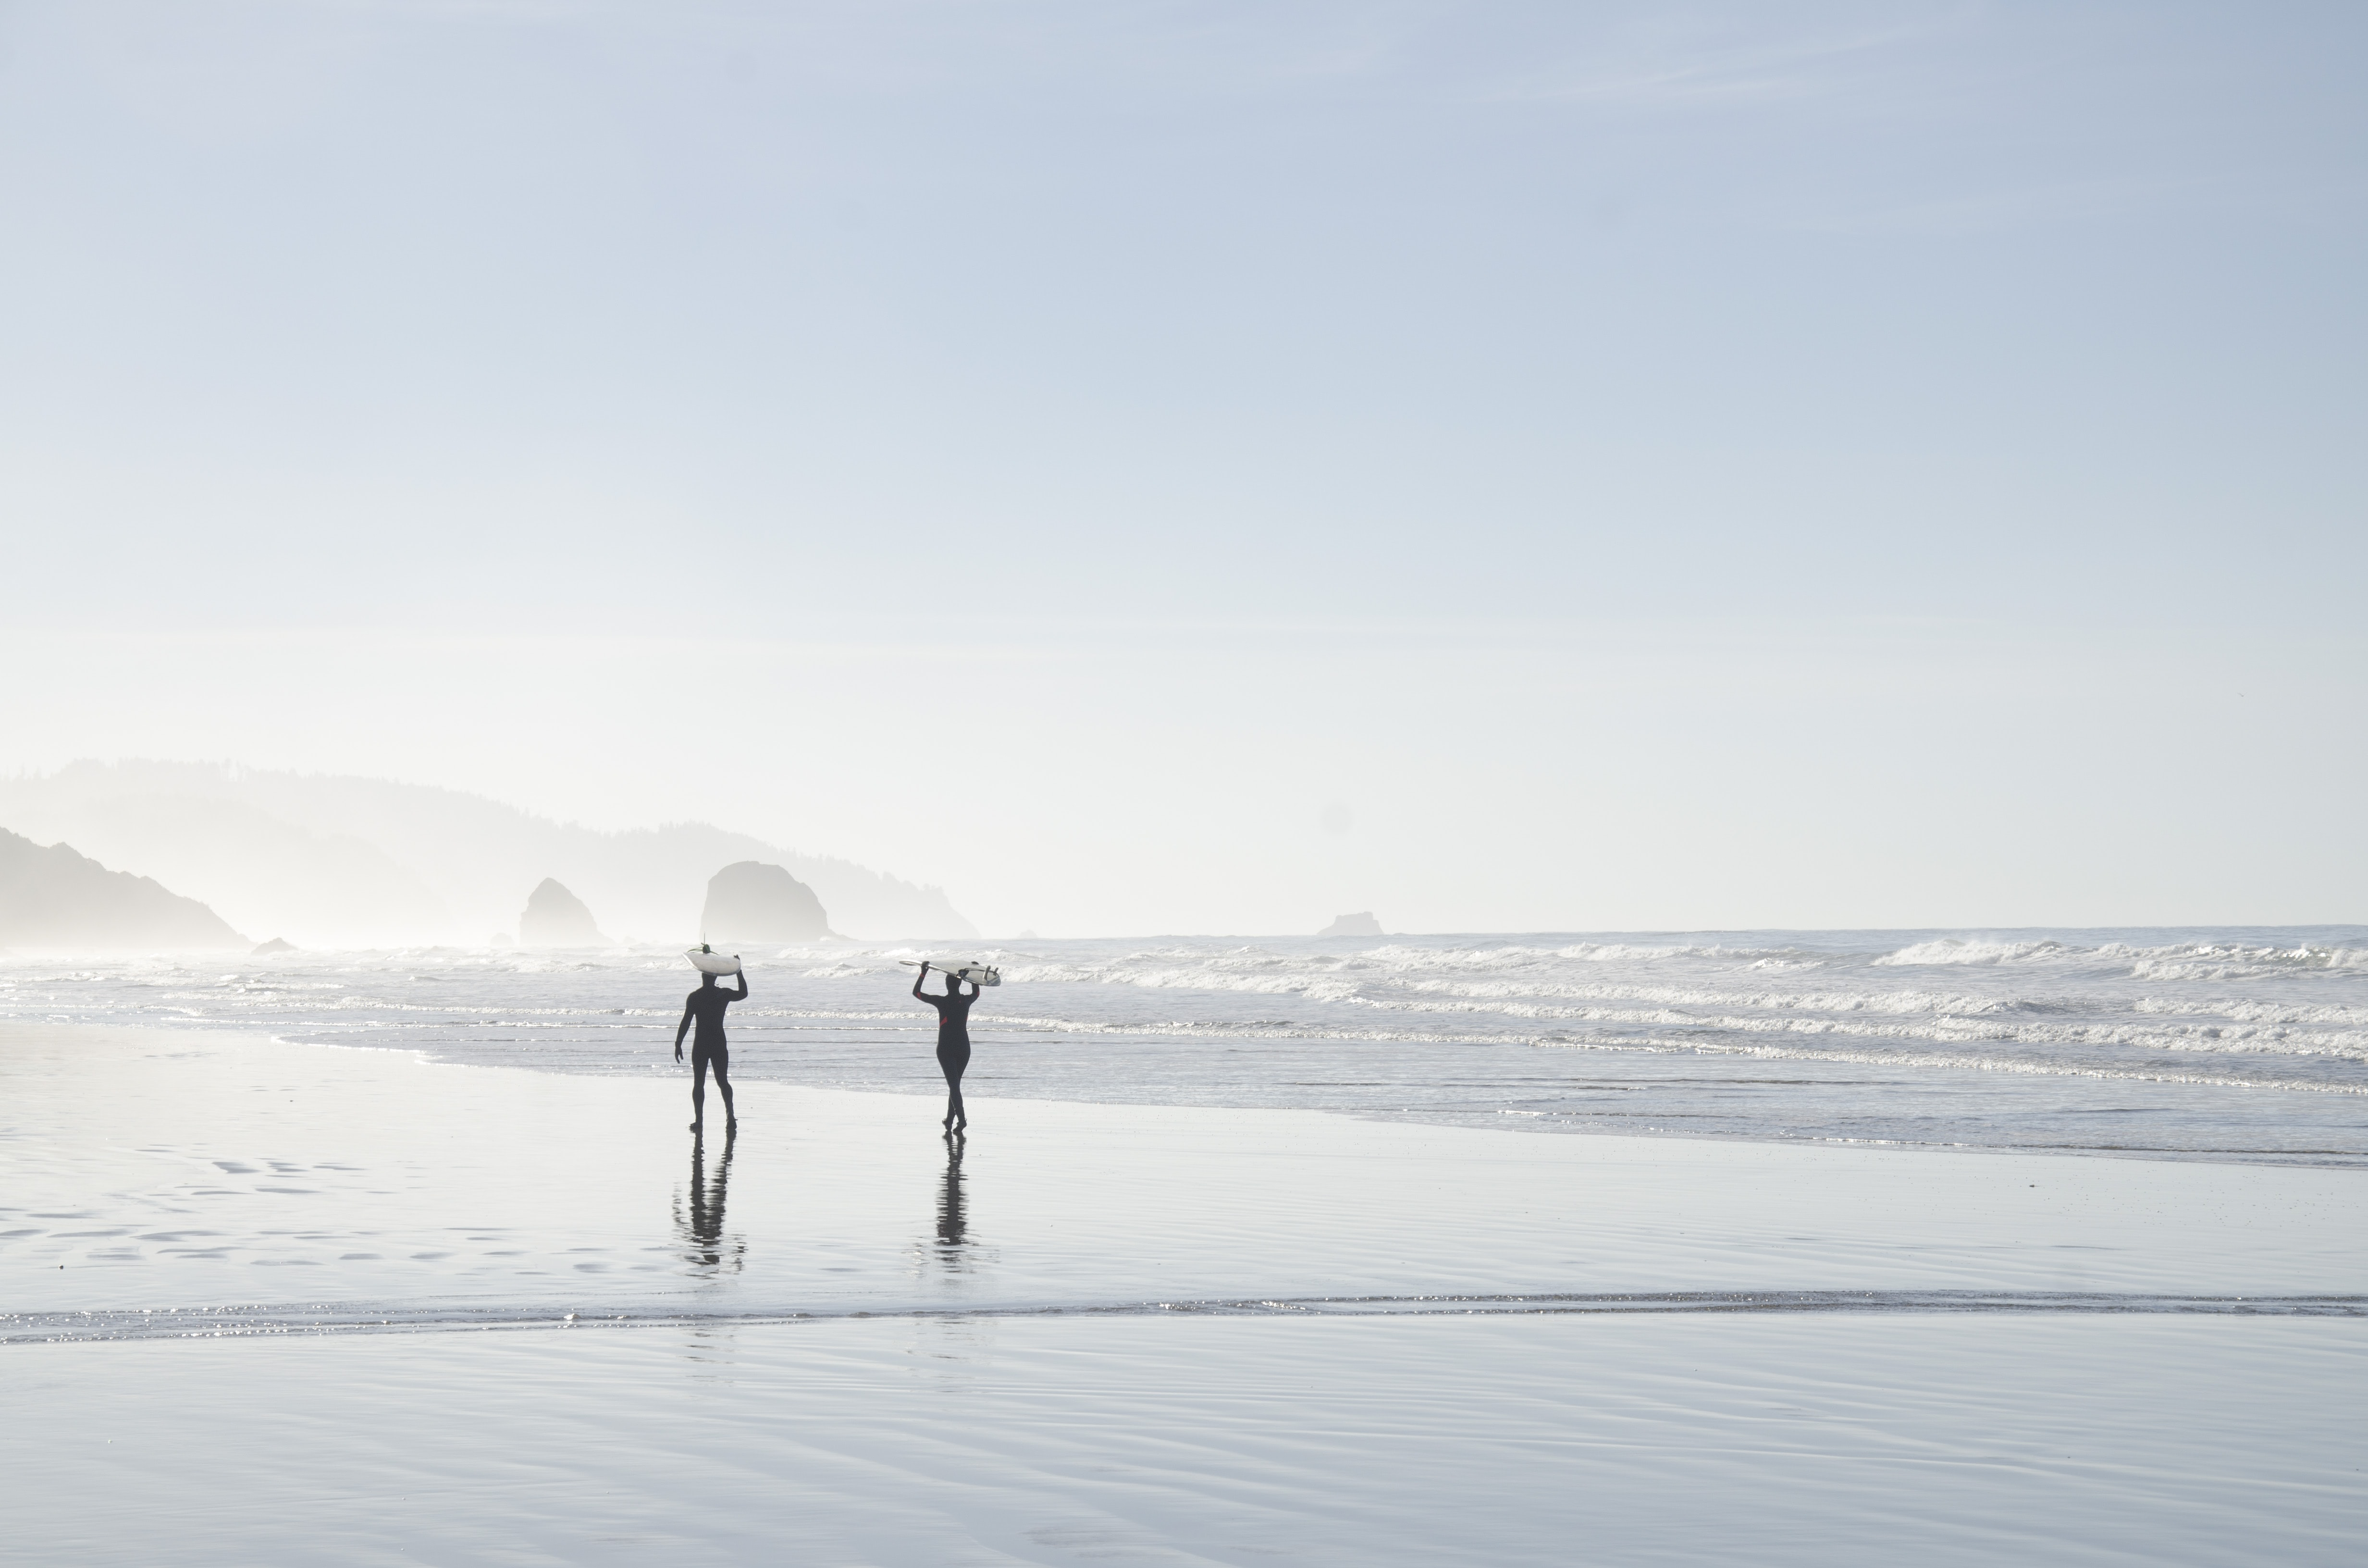 Silhouettes of two people carrying surfboards above their heads on a wet beach